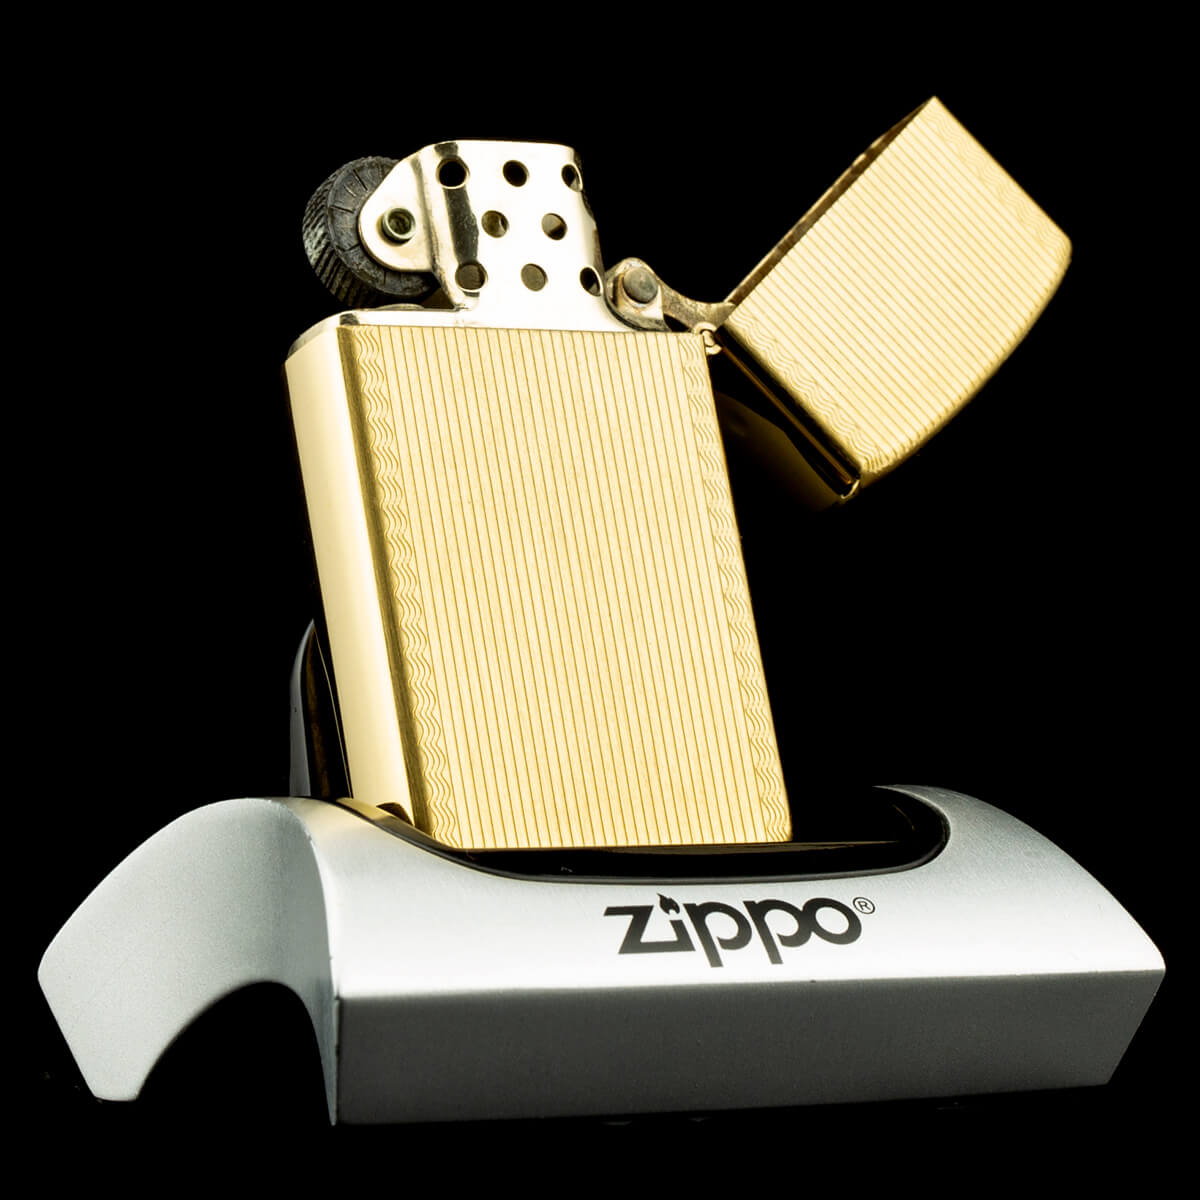 hot-quet-zippo-slim-gold-filled-10k-striped-1970s-phu-vang-hiem